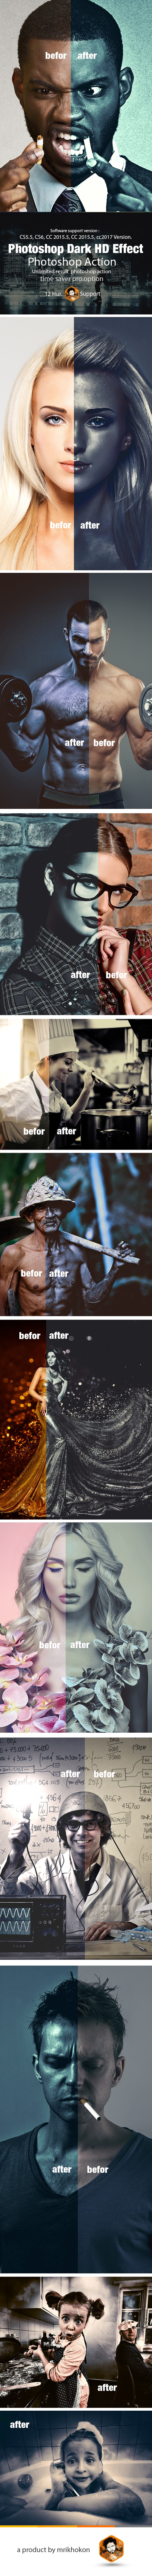 Photoshop Dark HD Effect - Actions Photoshop